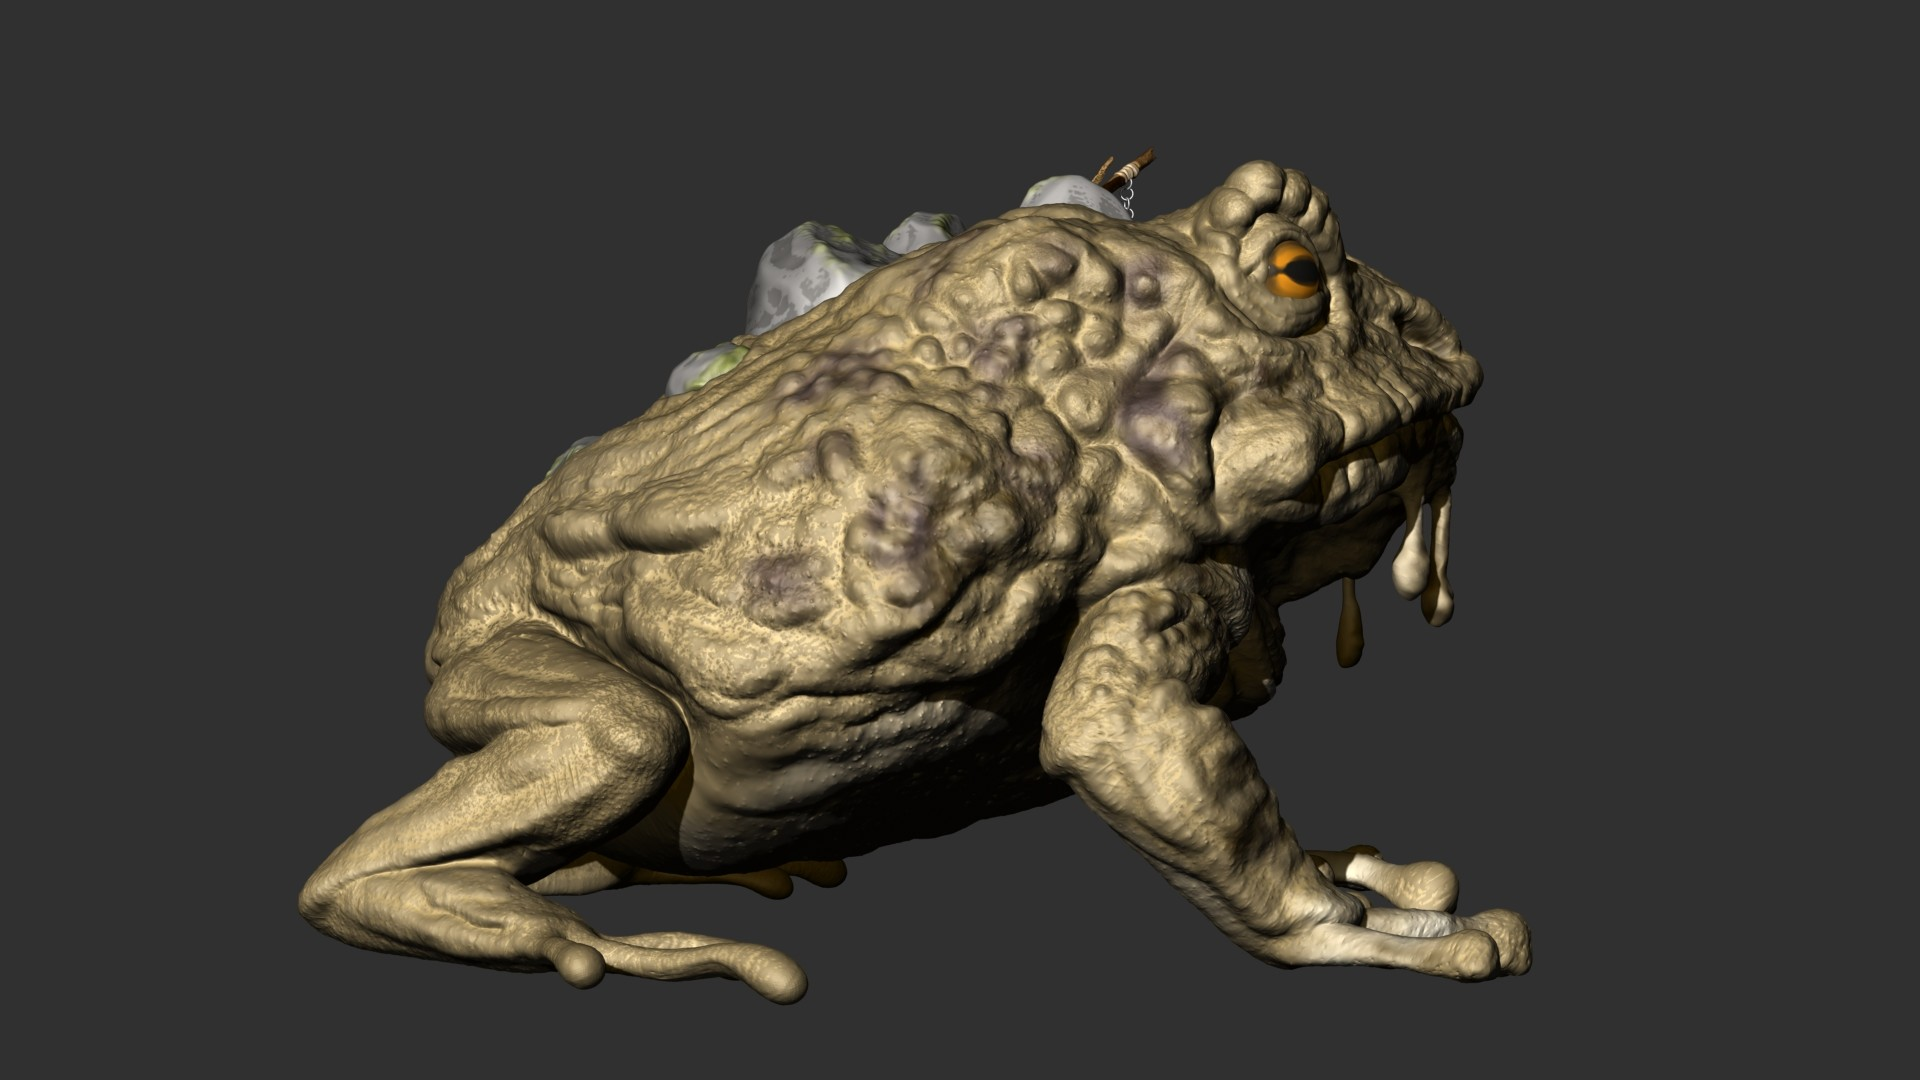 zbrush right view